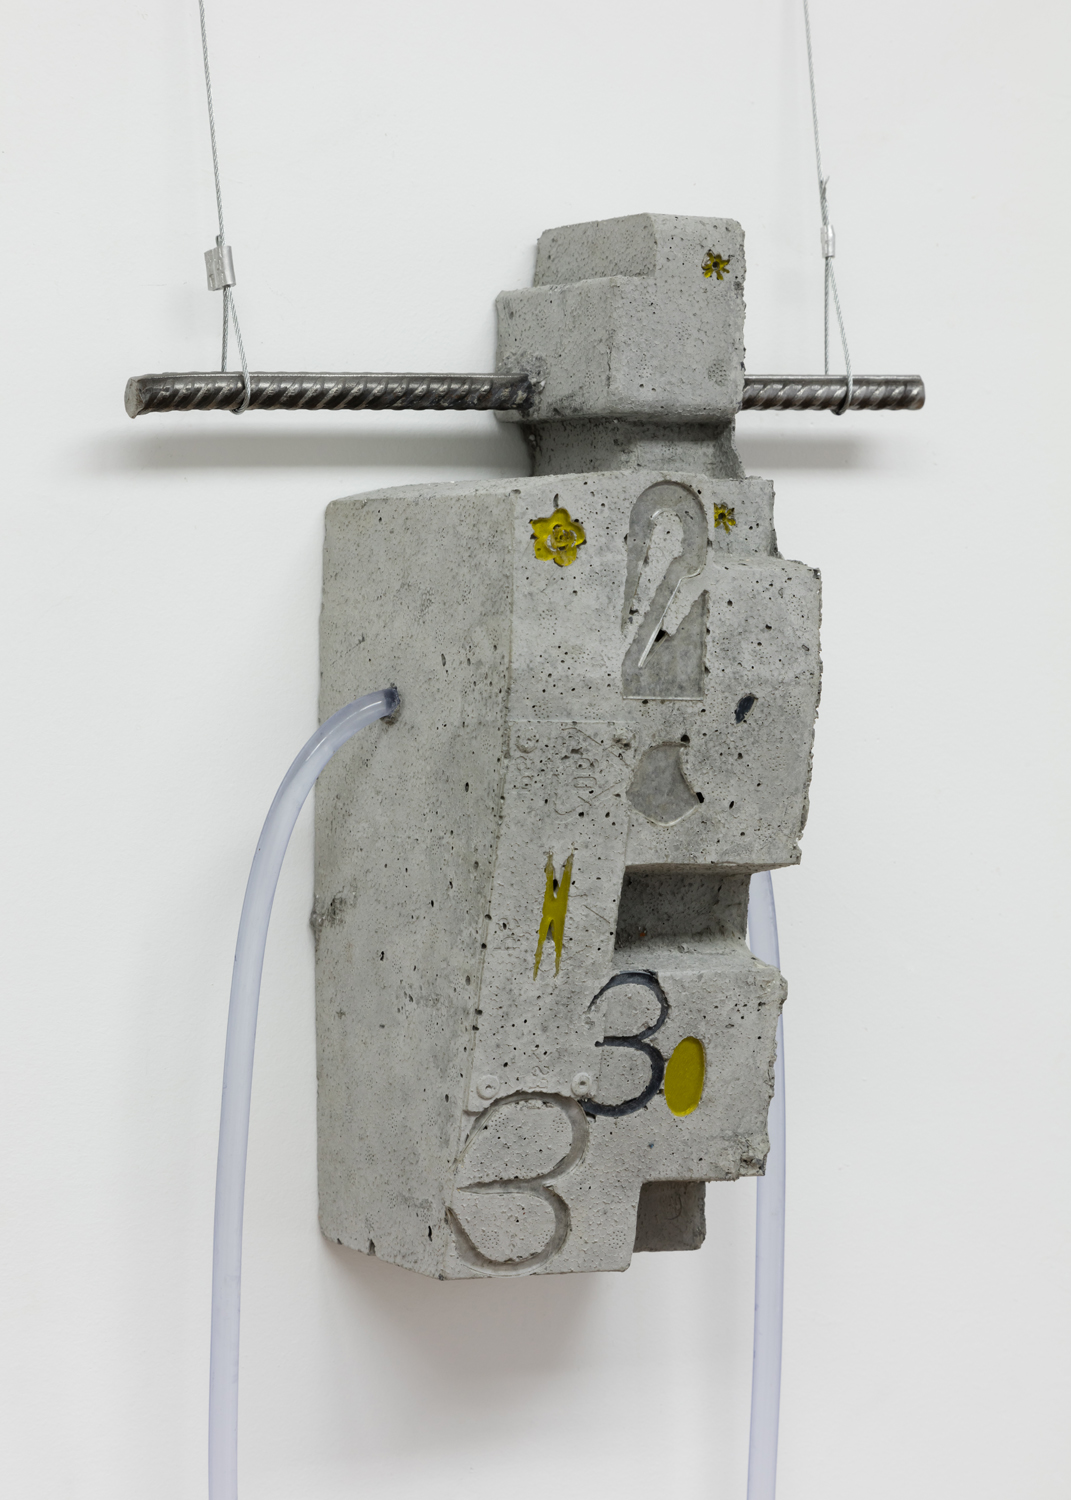 Phoebe Berglund in collaboration with Arkadiy Ryabin,  2033,  2019. Concrete, rebar, plexiglass, vinyl tubing. 13.5 x 12.5 x 5.5 inches.